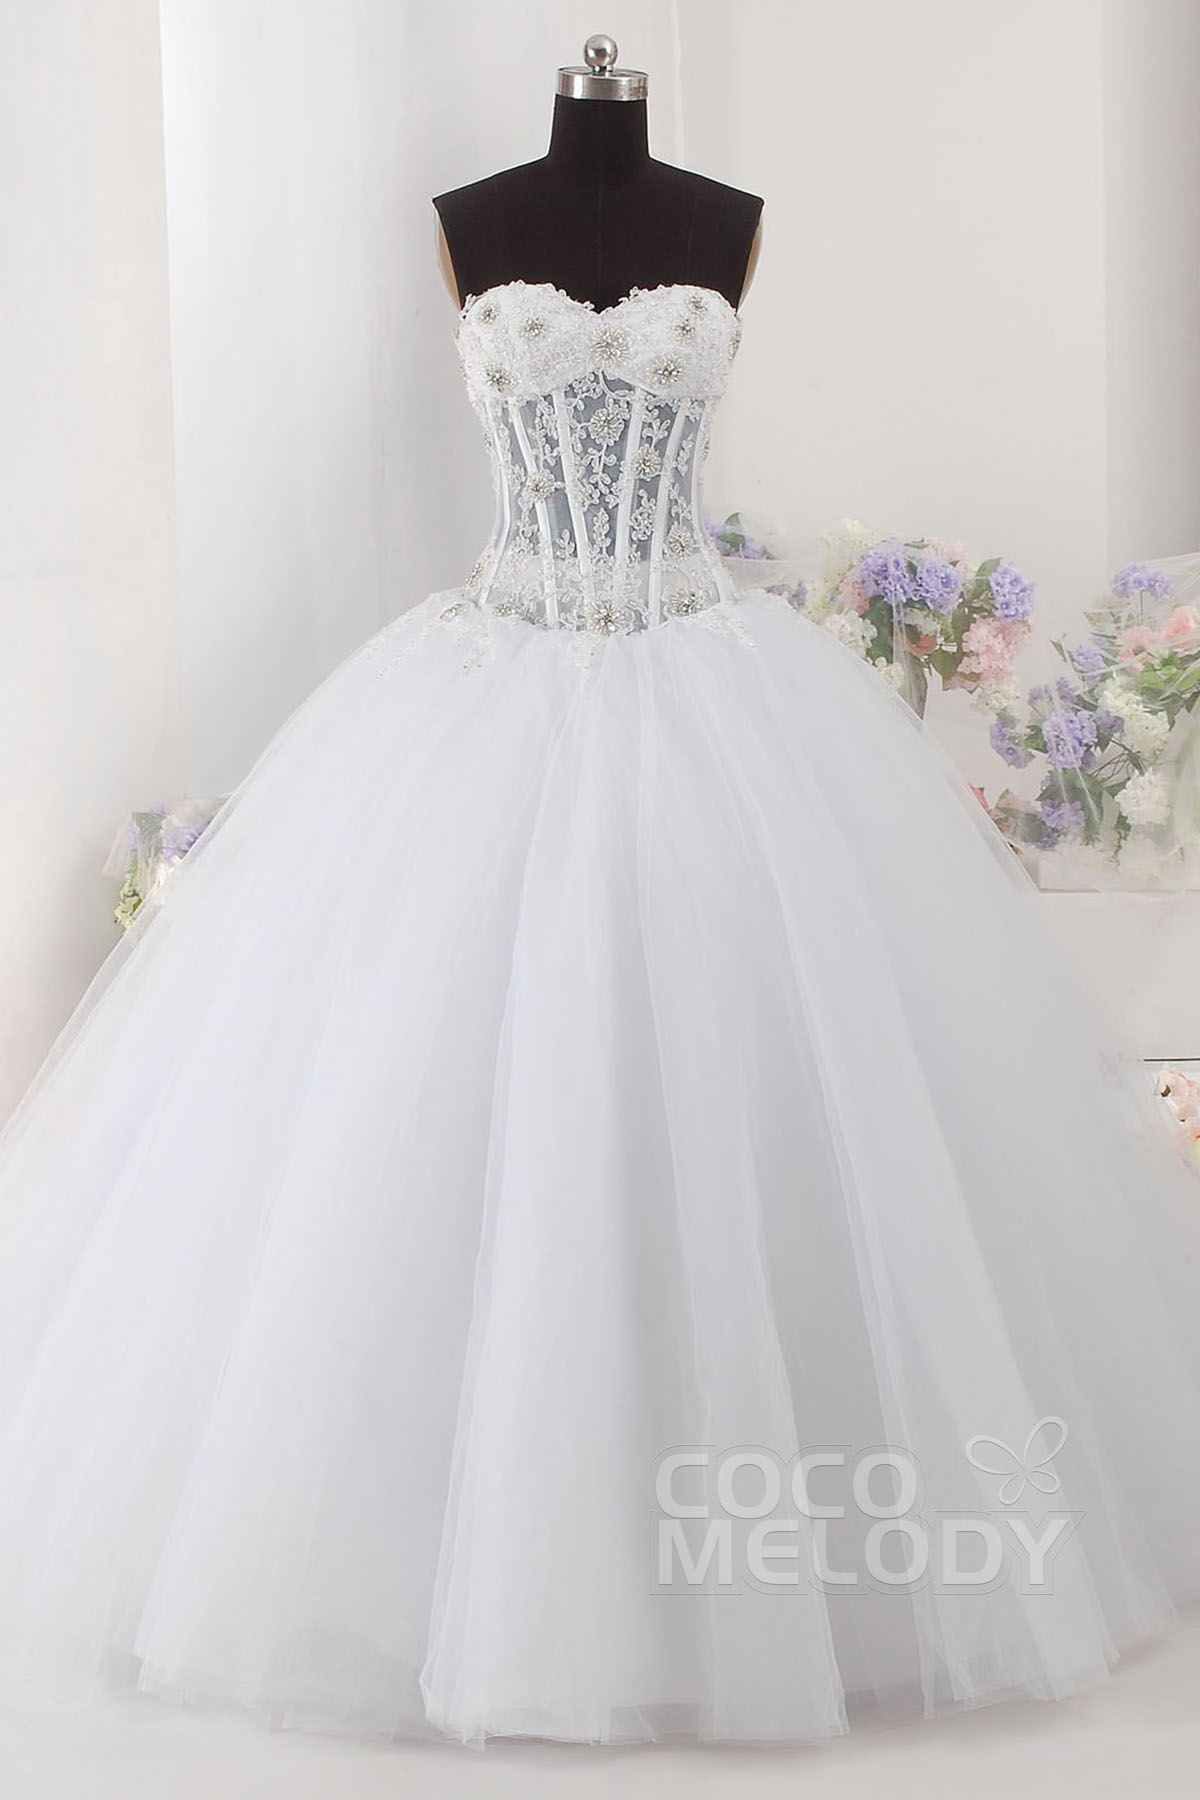 Sweet Ball Gown Sweetheart Natural Floor Length Tulle Sleeveless Lace Upcorset Wedding Dress With Beading And Appliques Php1235000: Sweet Ball Gown Wedding Dress Corset At Reisefeber.org